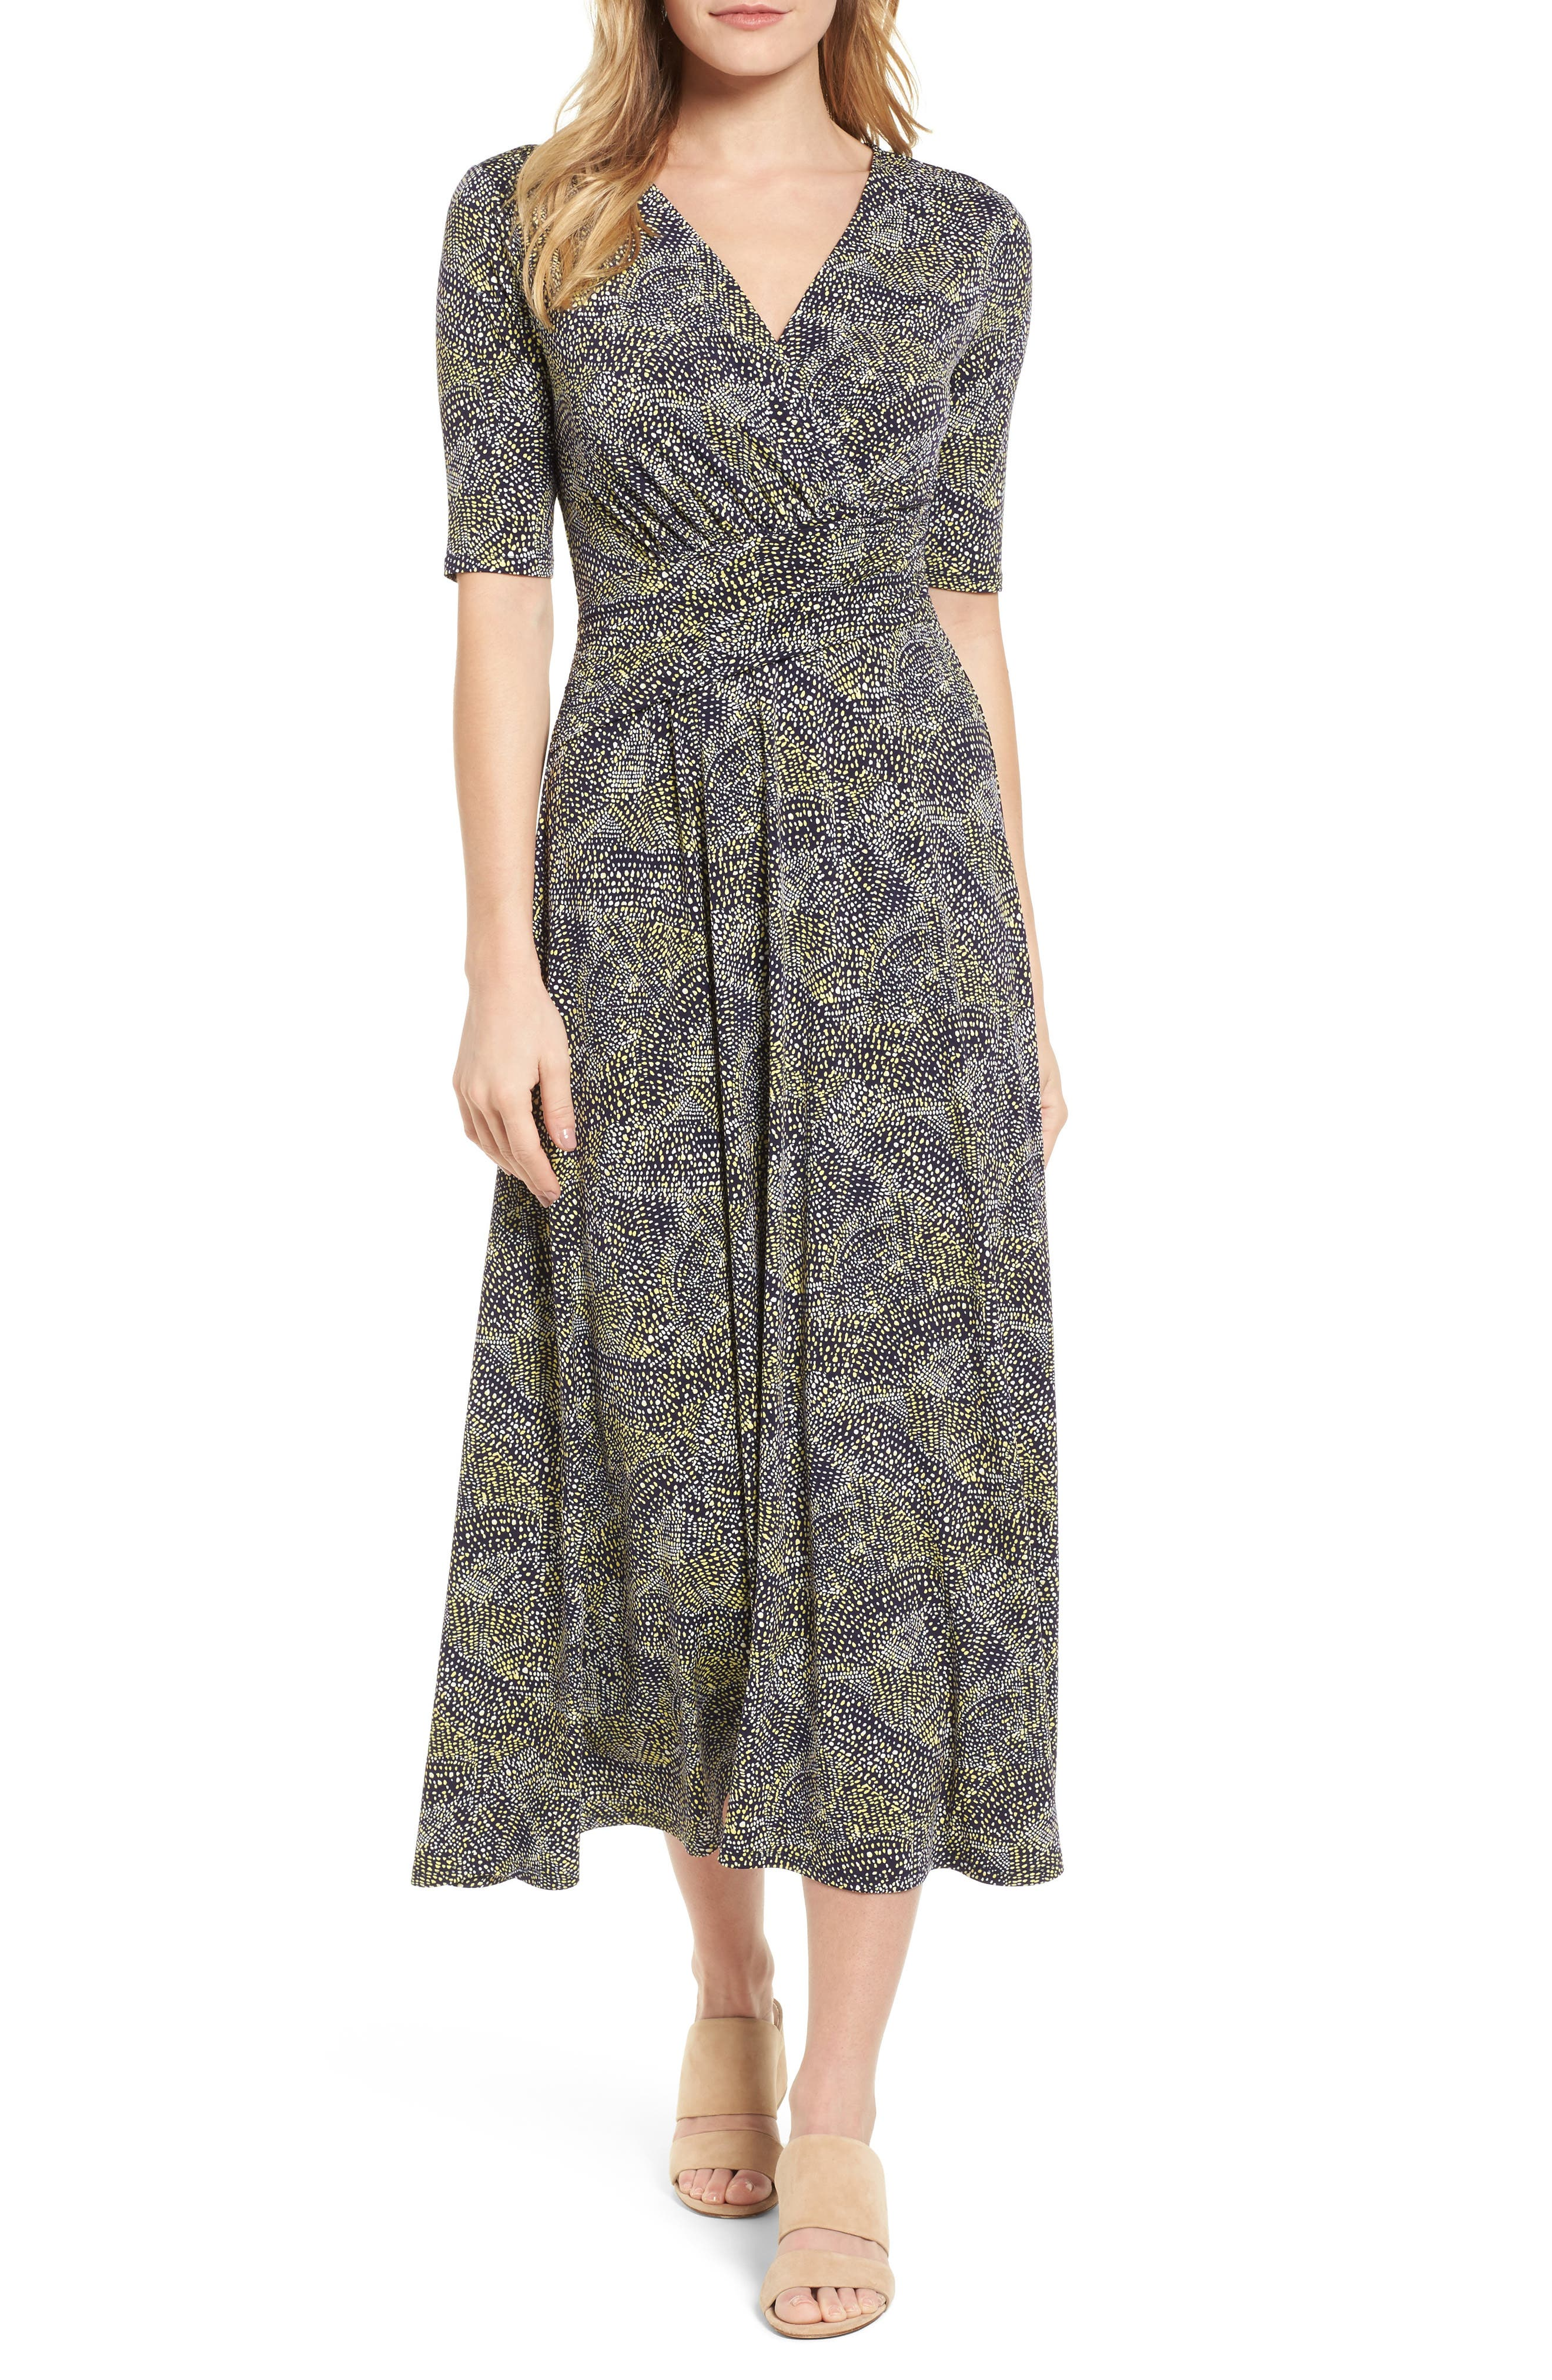 Ruched Speckle Midi Dress,                             Main thumbnail 1, color,                             784-Vivid Canary